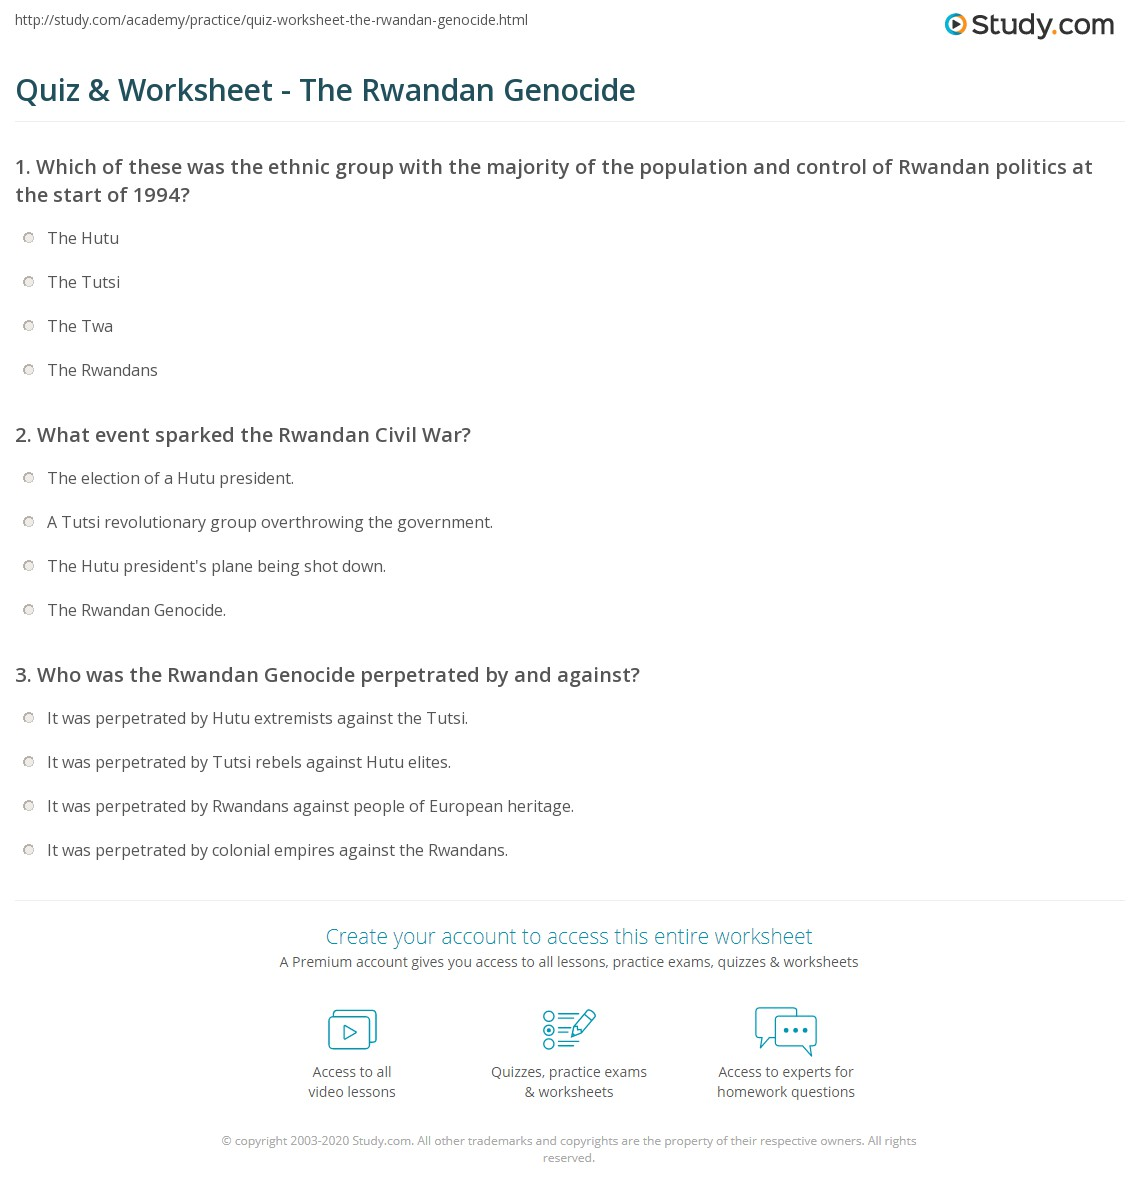 worksheet hotel rwanda worksheet worksheet study site worksheet hotel rwanda worksheet hotel rwanda essay about paper smoking research paperquot genocide quiz amp worksheet